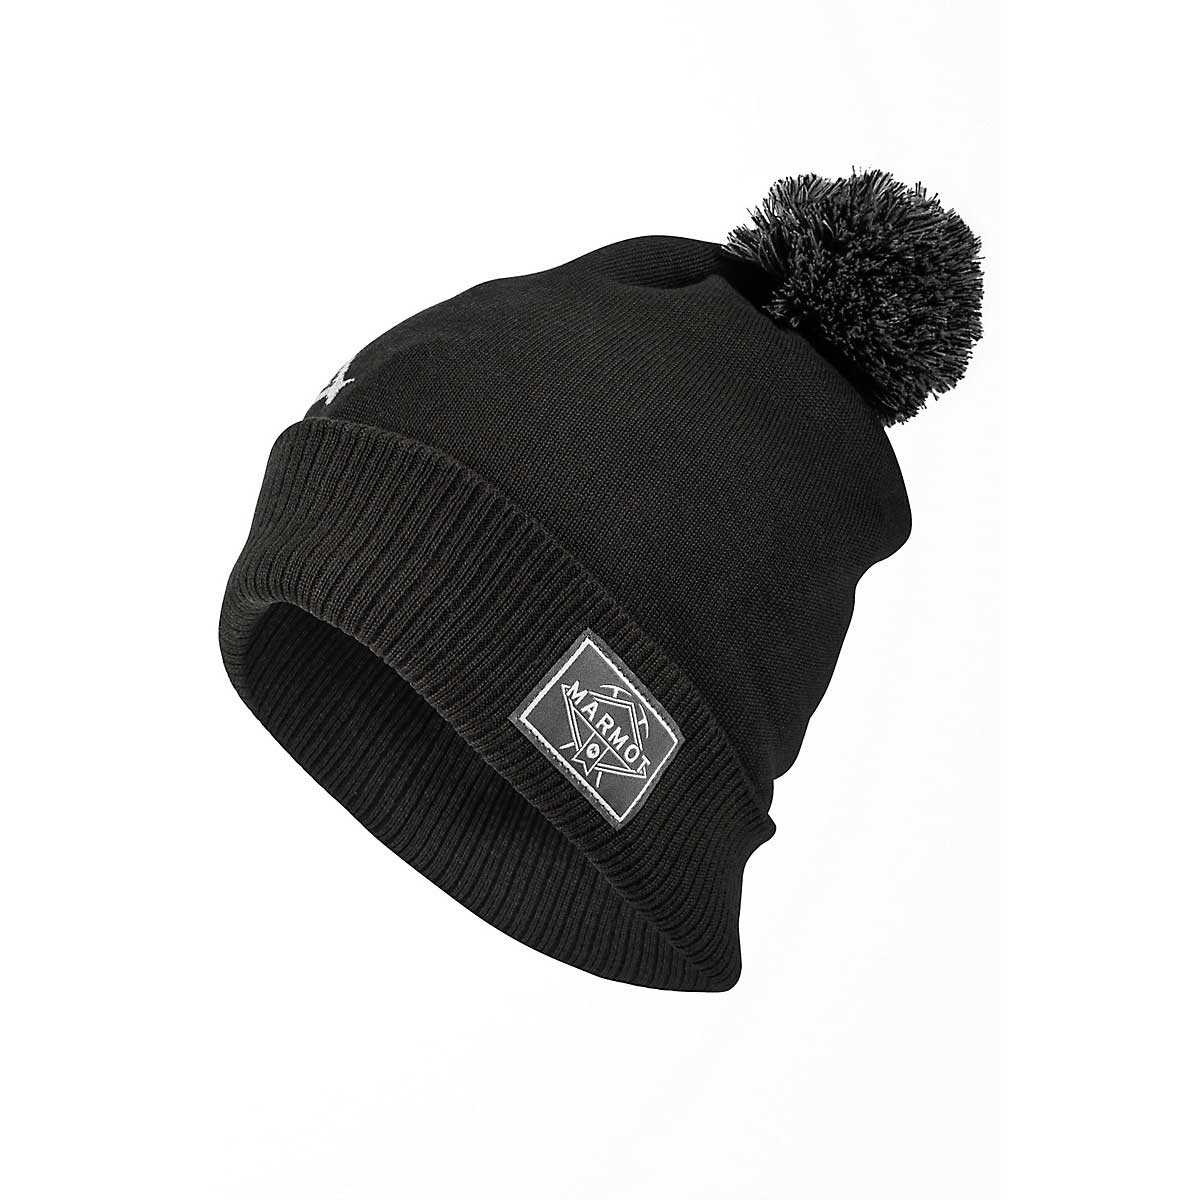 Marmot Marshall Hat in Black